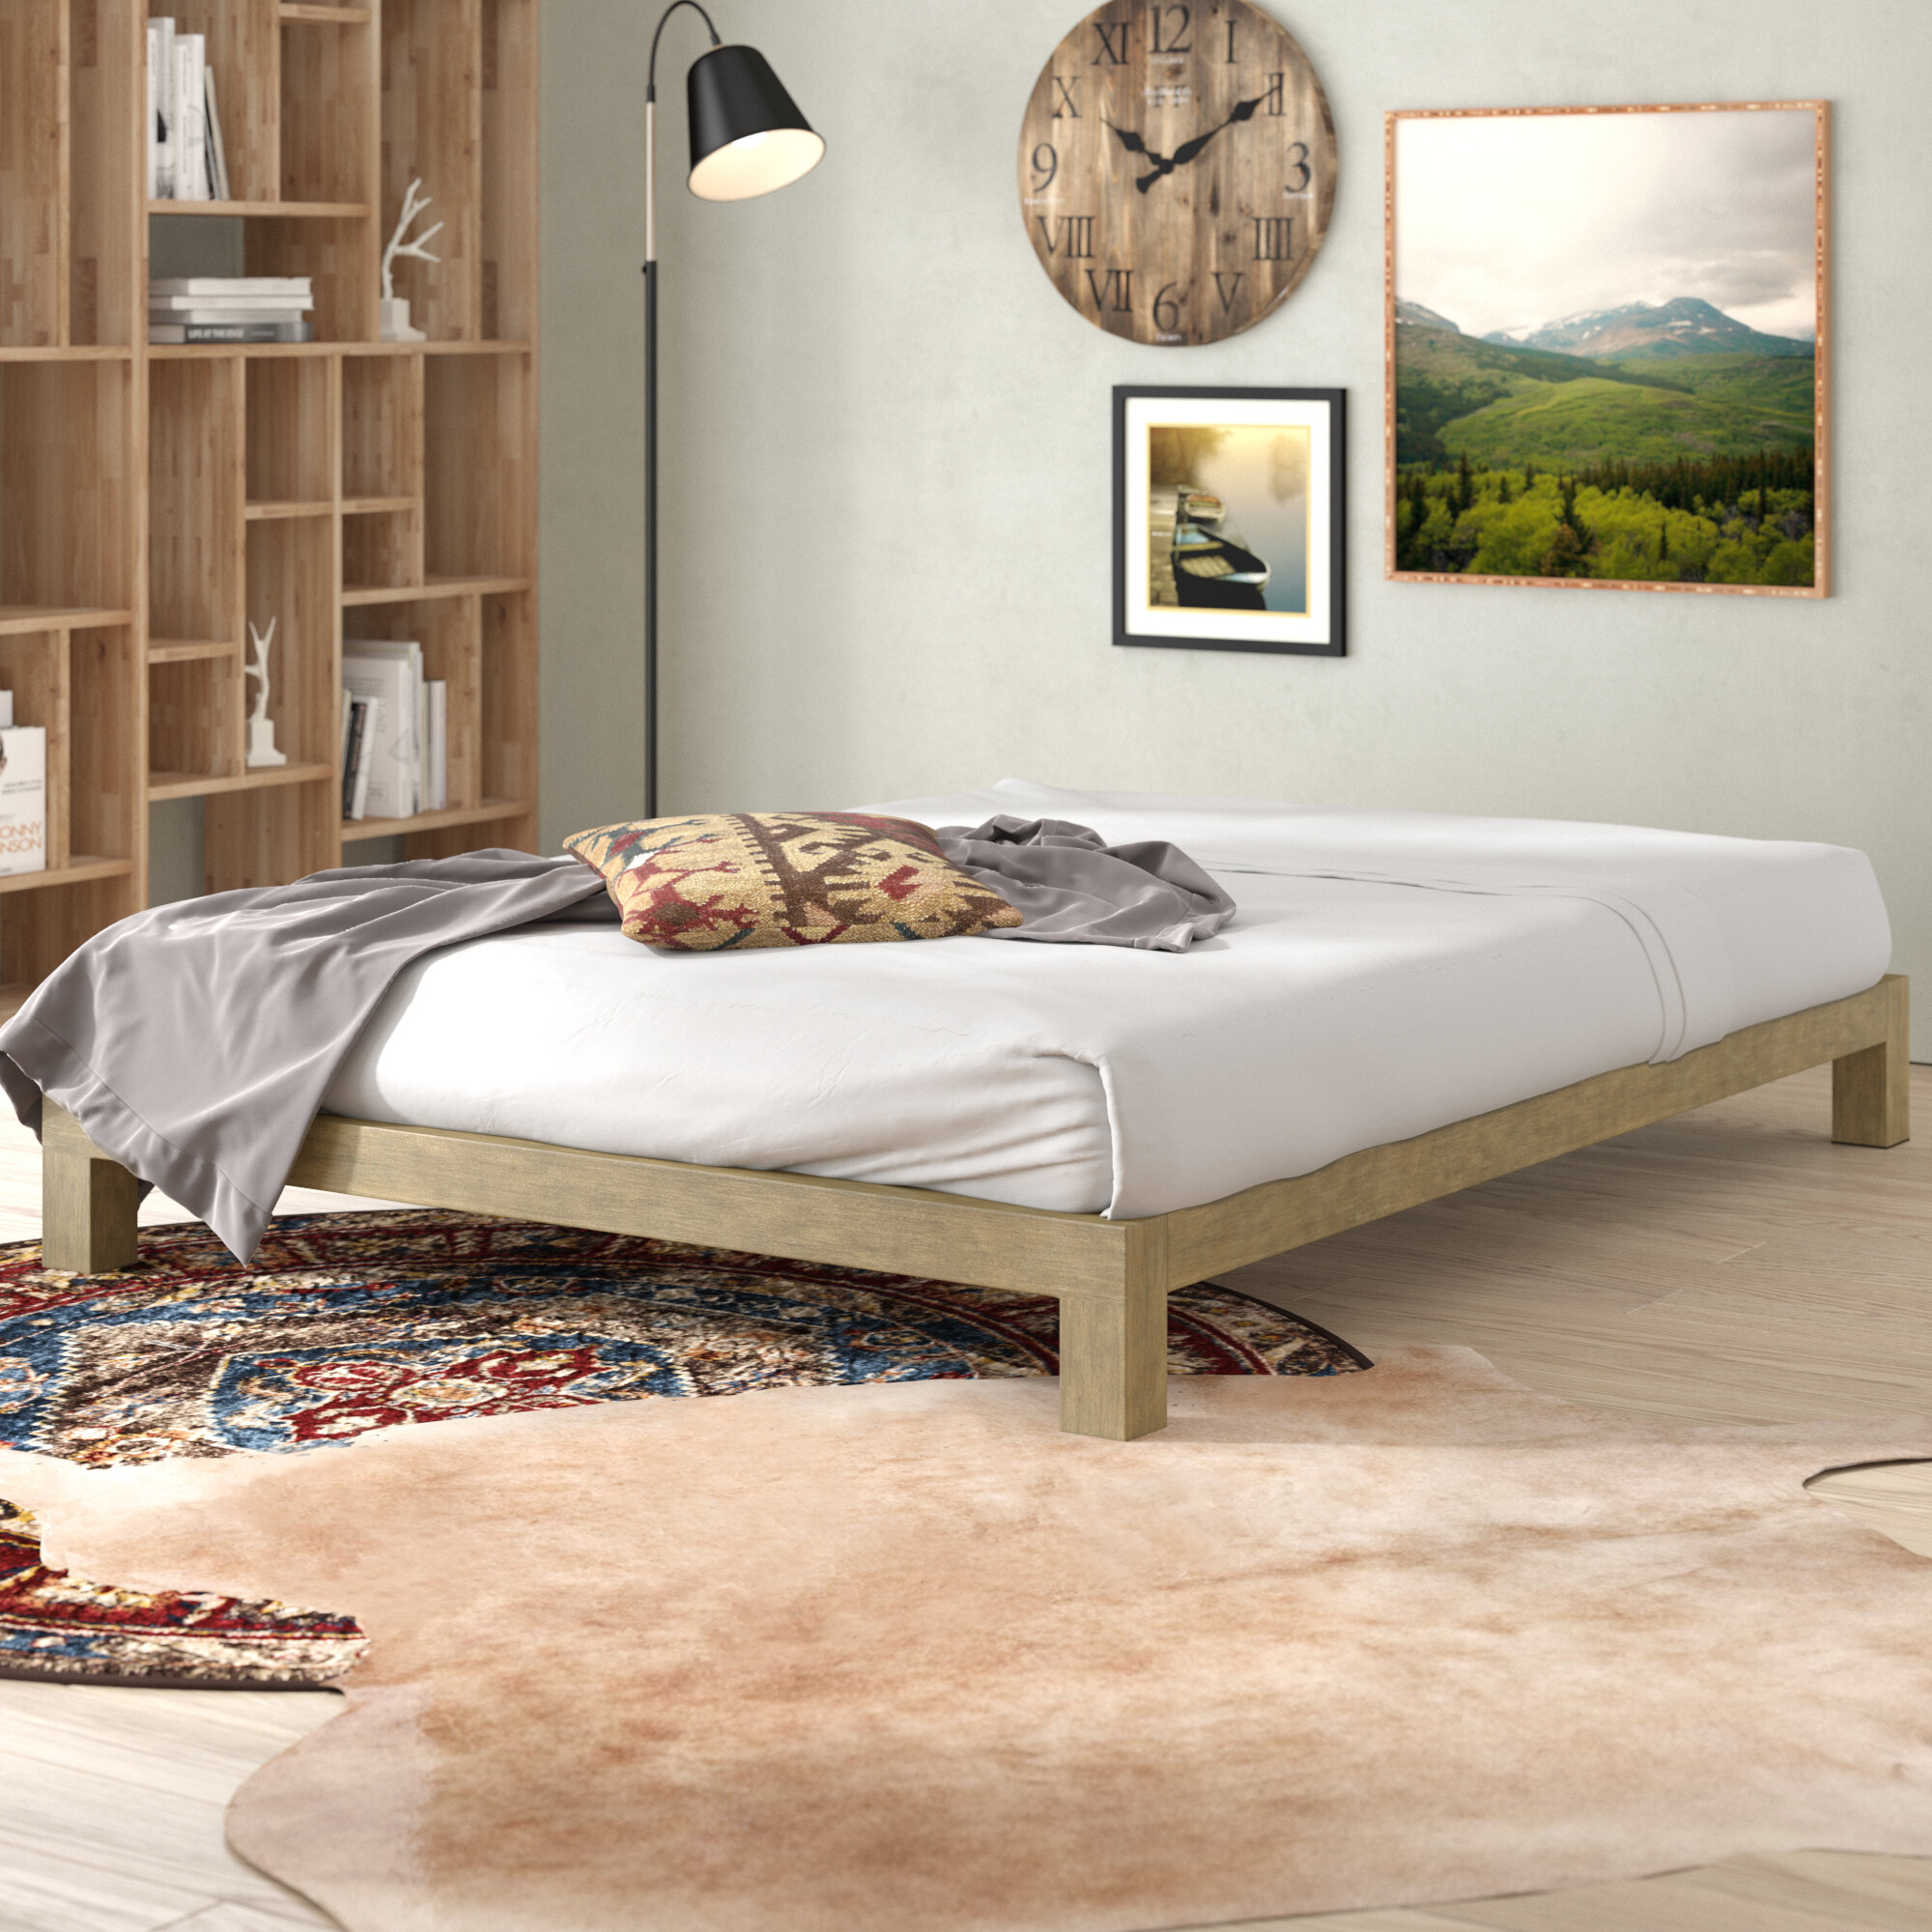 full in way modern white a bedroom with platform metal bed frame of size stylish